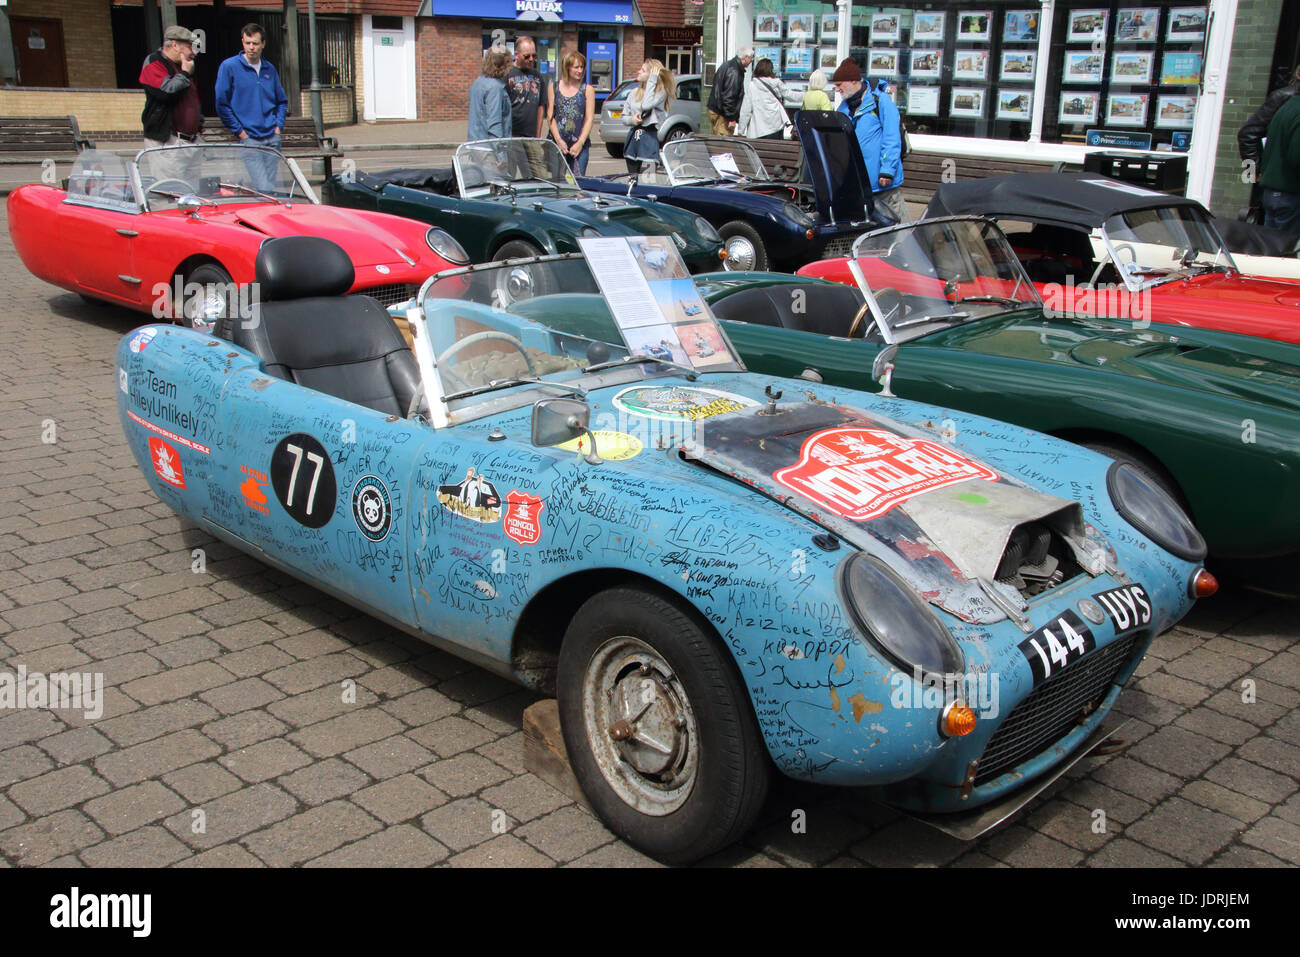 Berkeley cars made over 4000 between 1956 and 1960 from their ...